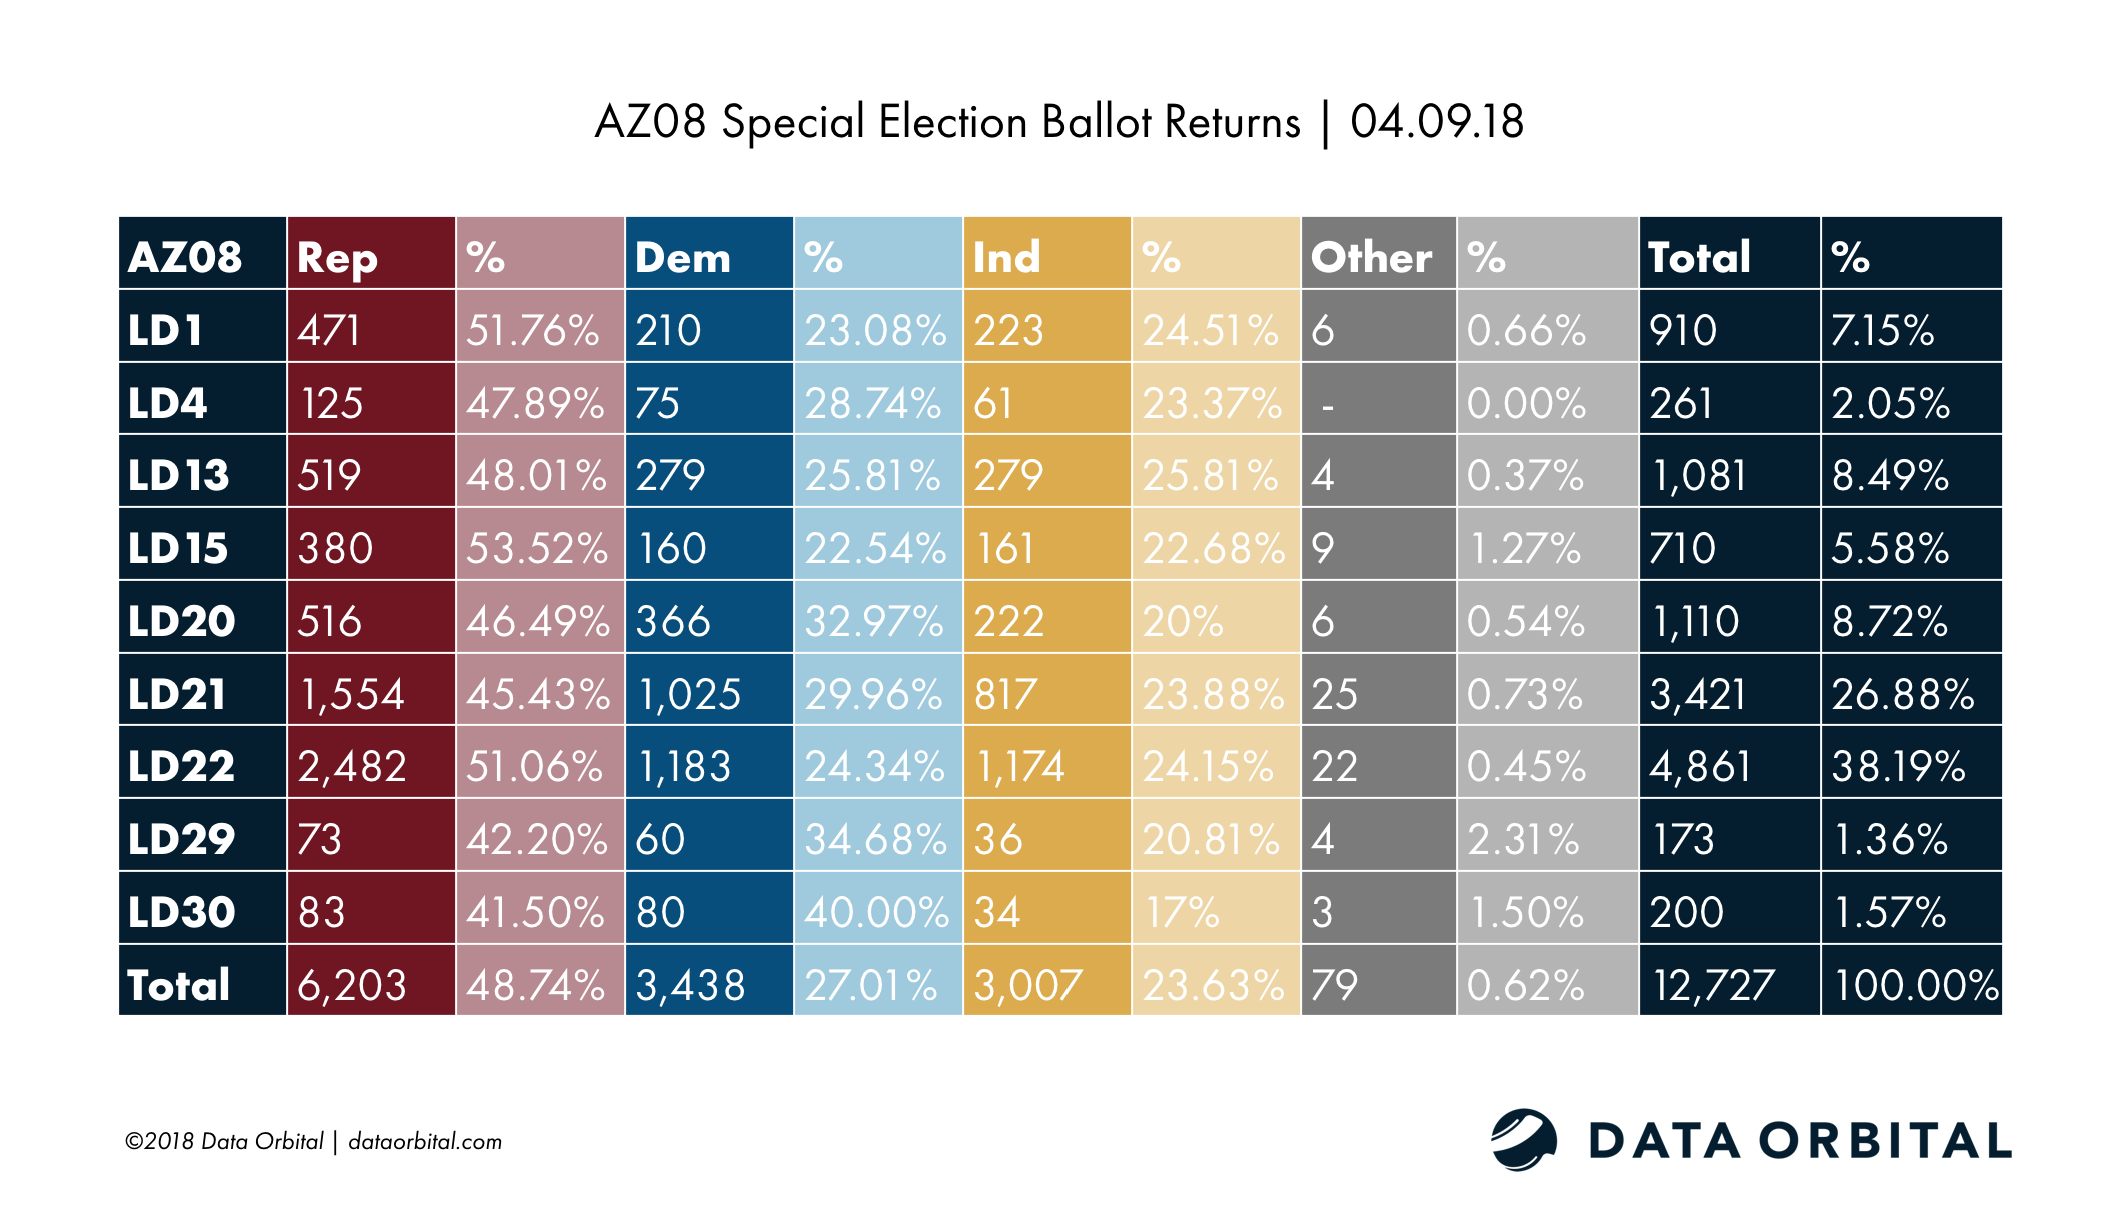 AZ08 Special Election Ballot Returns 04.09.18